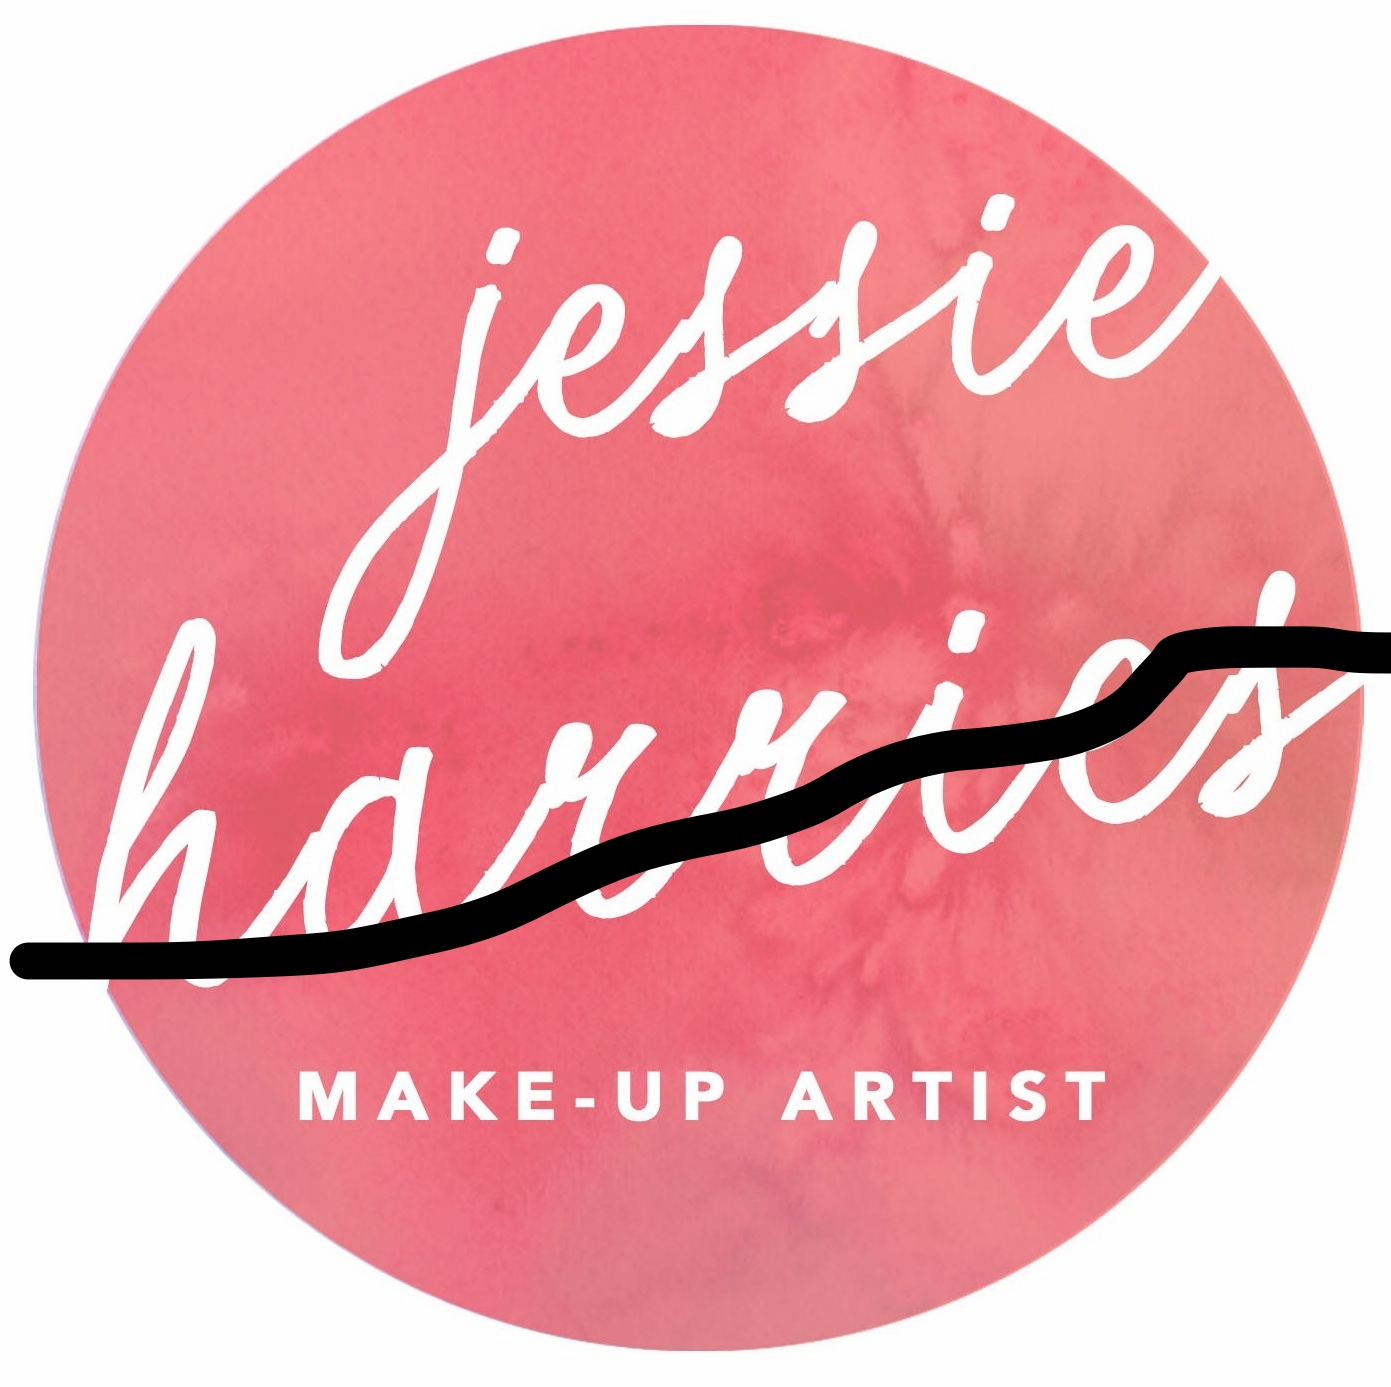 jessica harries makeup artist zoom.jpg